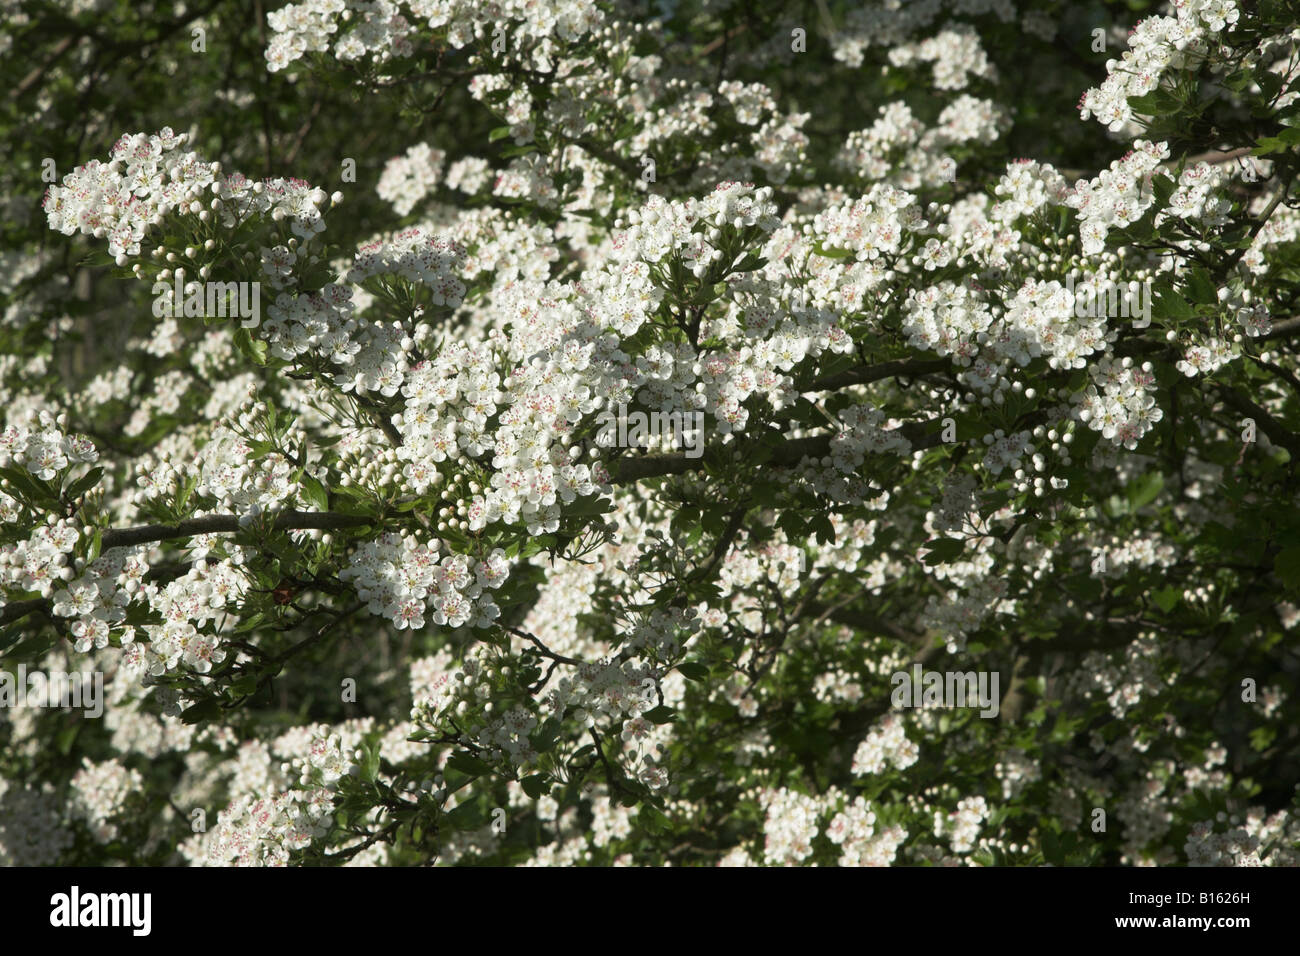 Blossom on common hawthorn tree, Crataegus monogyna, close up - Stock Image